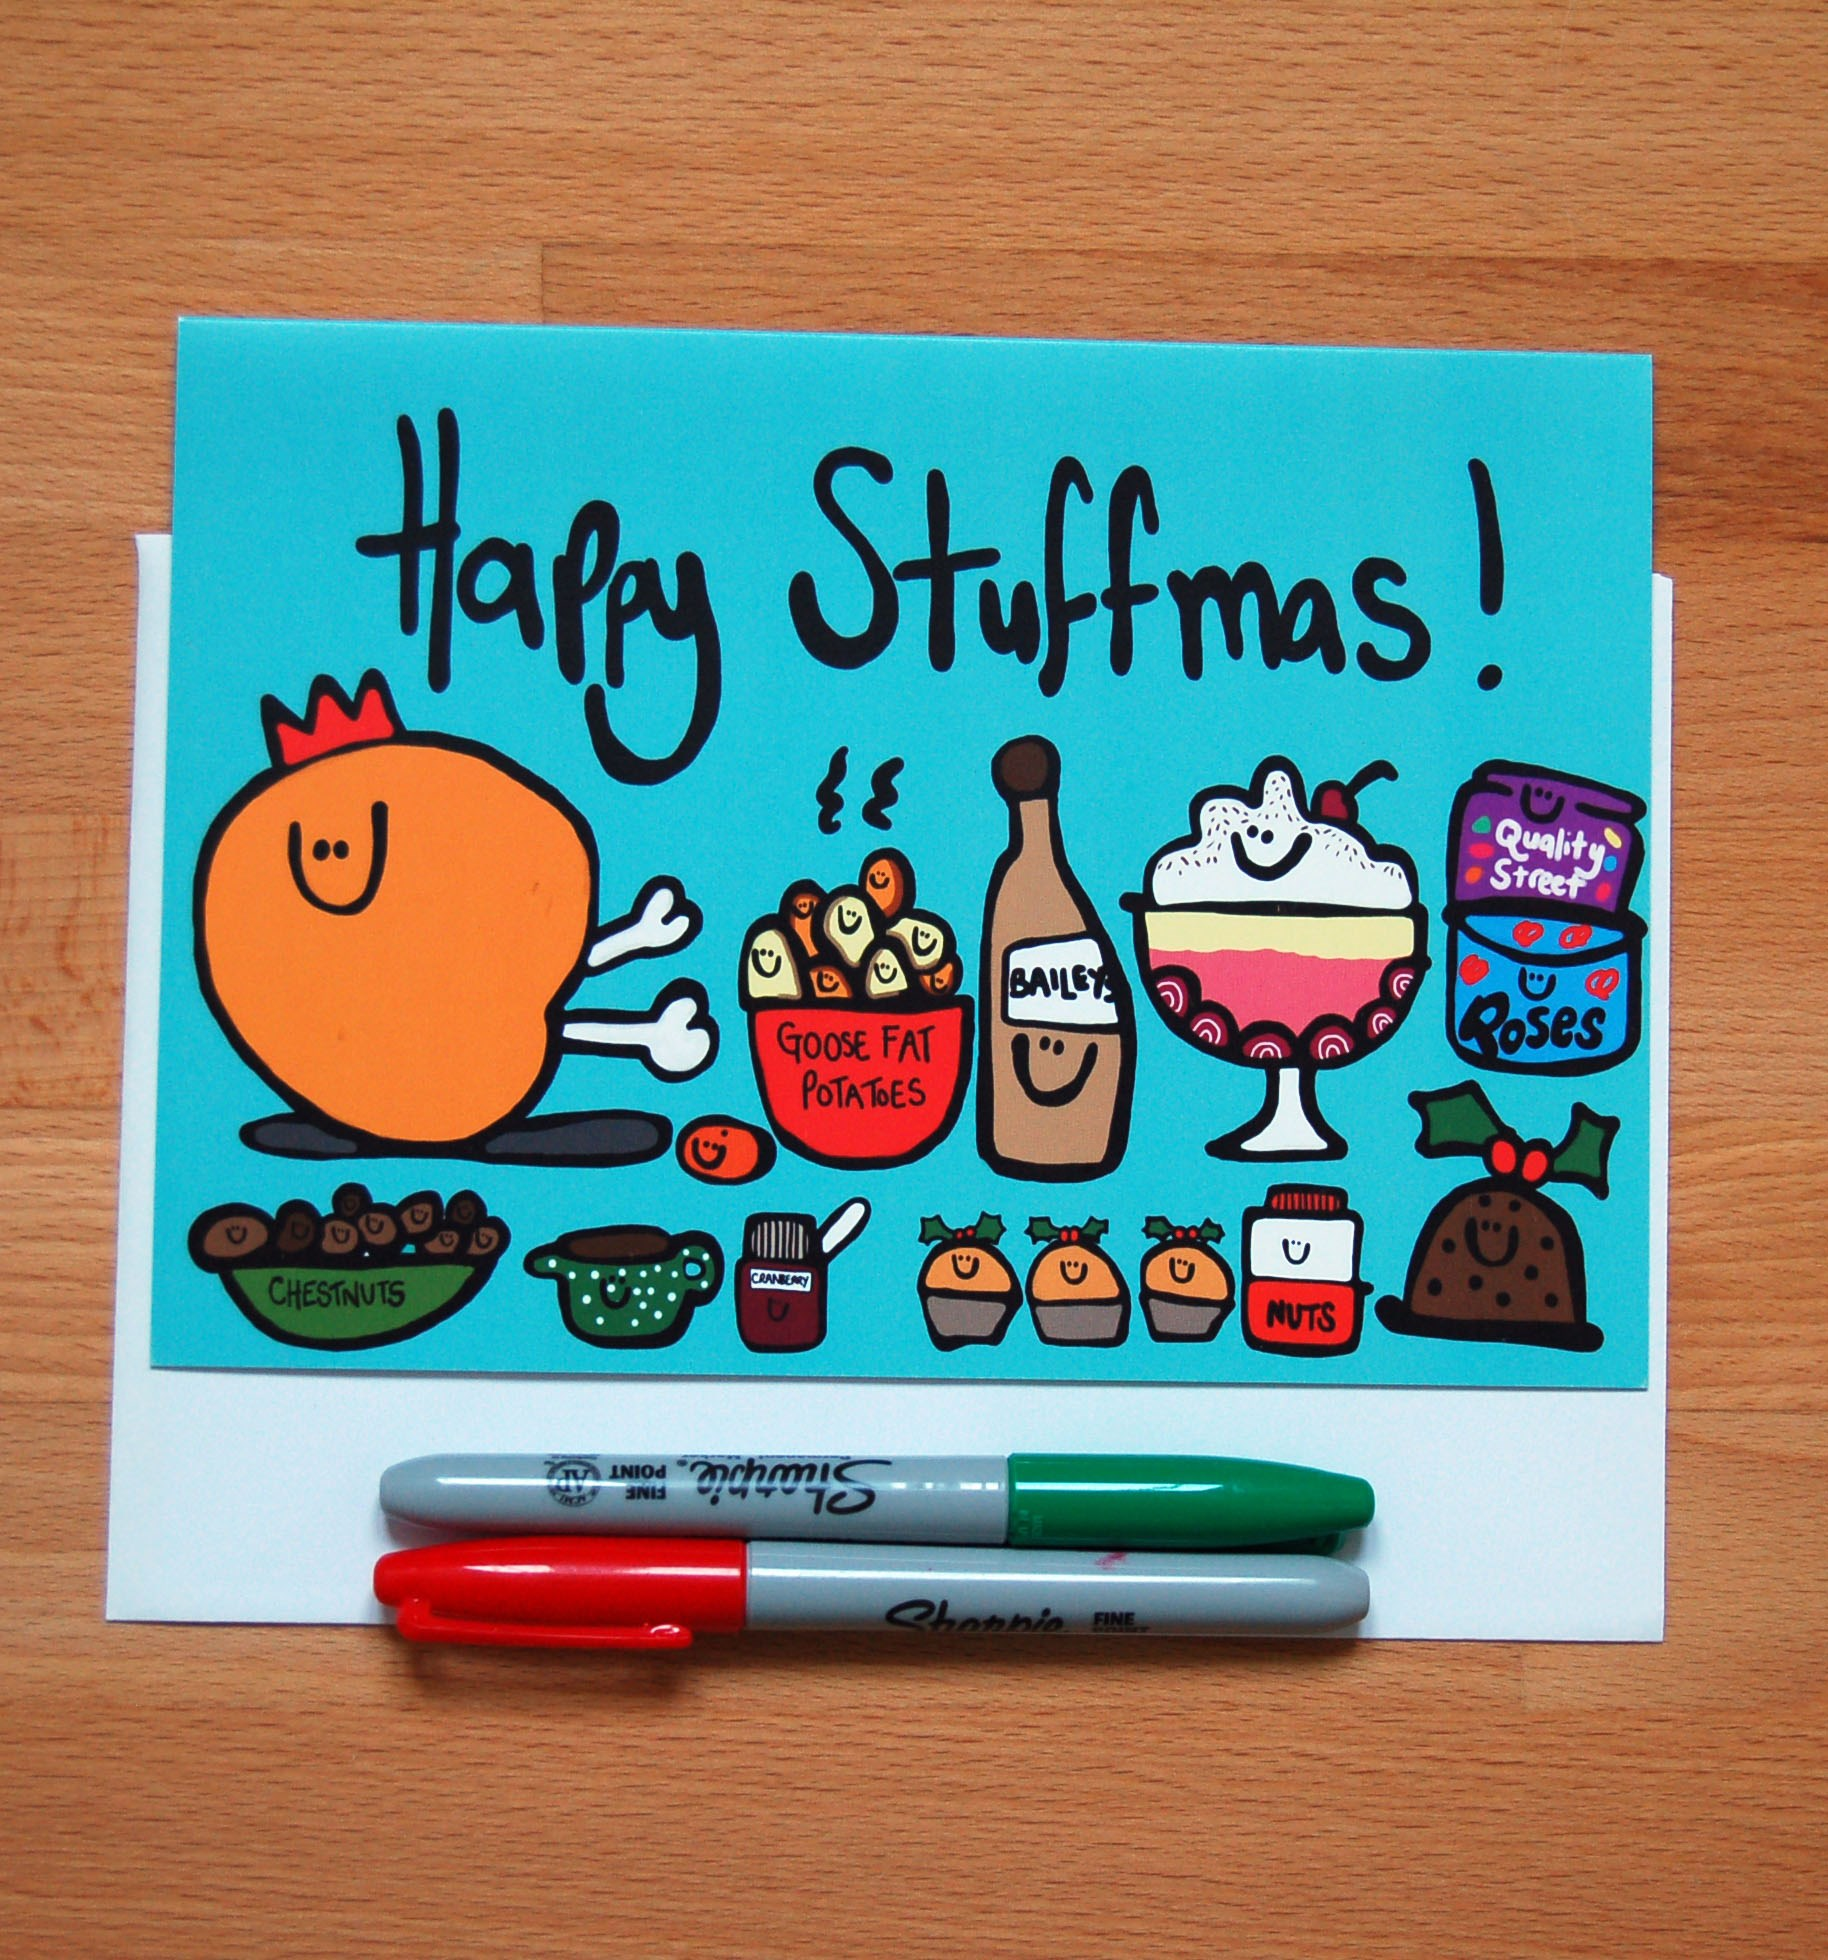 Happy Stuffmas A5 Christmas Card